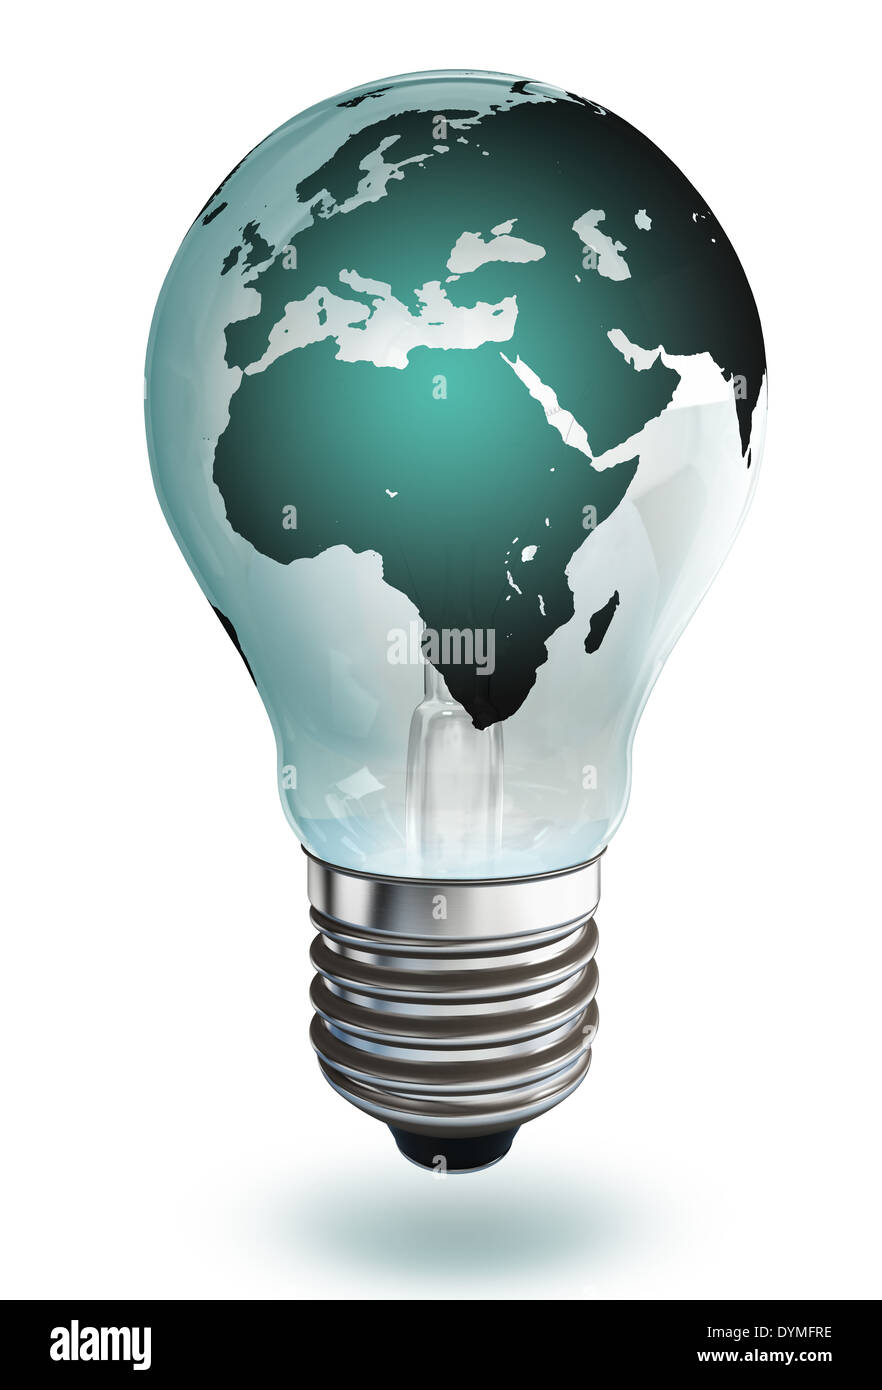 africa and europe continent light bulb on white background, clipping path included - Stock Image